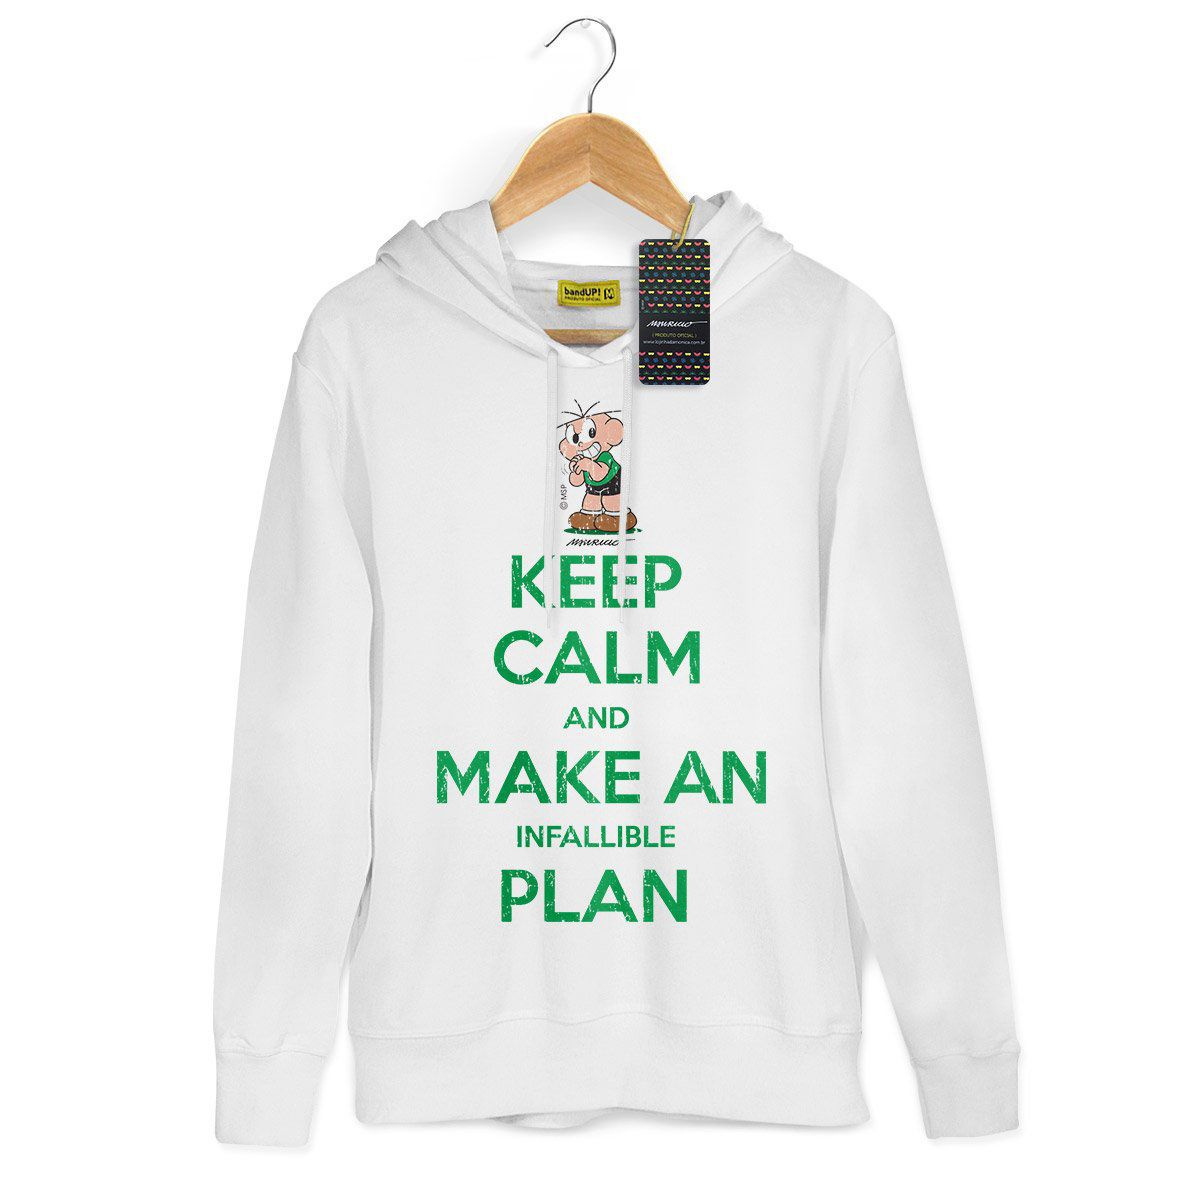 Moletom Branco Turma da Mônica Cool Keep Calm And Make An Infallible Plan